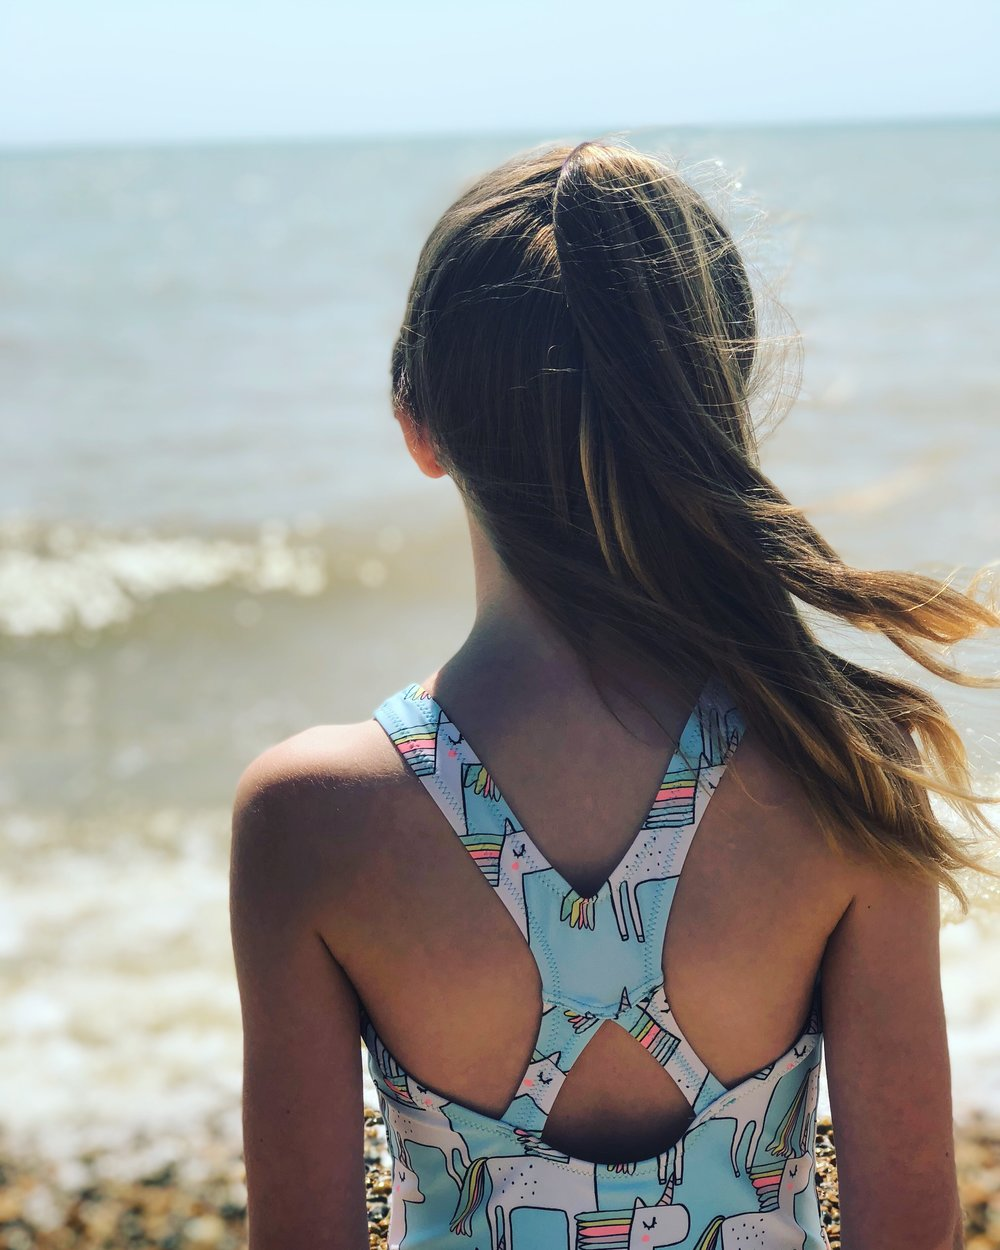 Ready Camp UK Unicorn swimsuit on the beach in Eastbourne